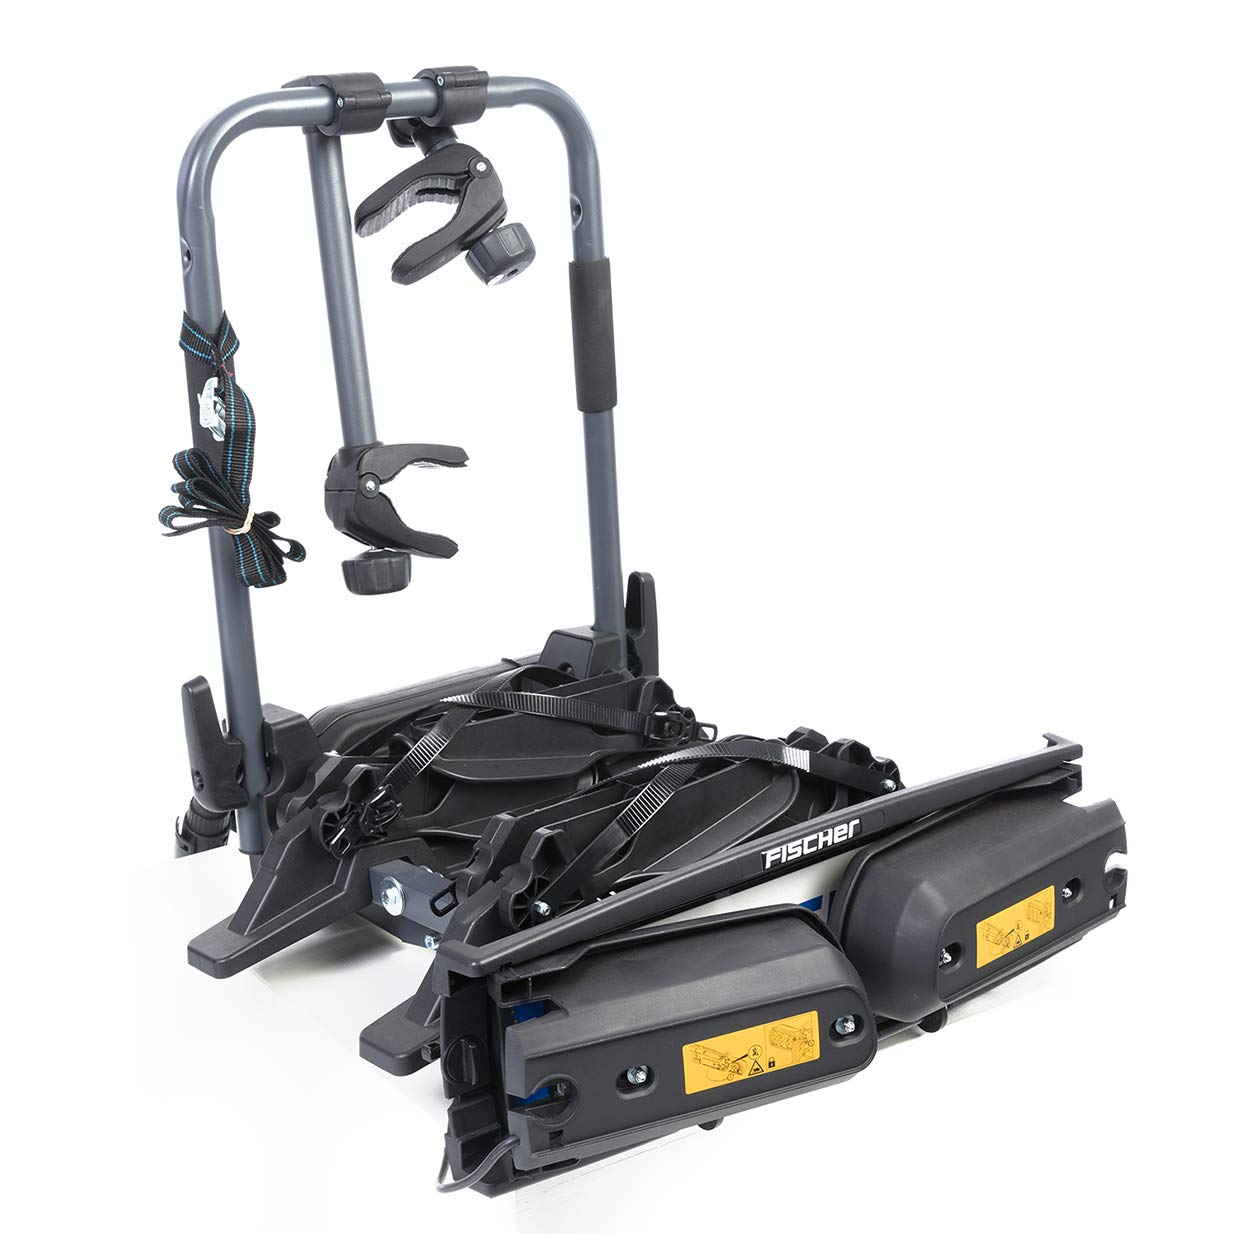 Fischer 126001/Proline Evo Bicycle Carrier for 2/Bicycles or Electric Bikes